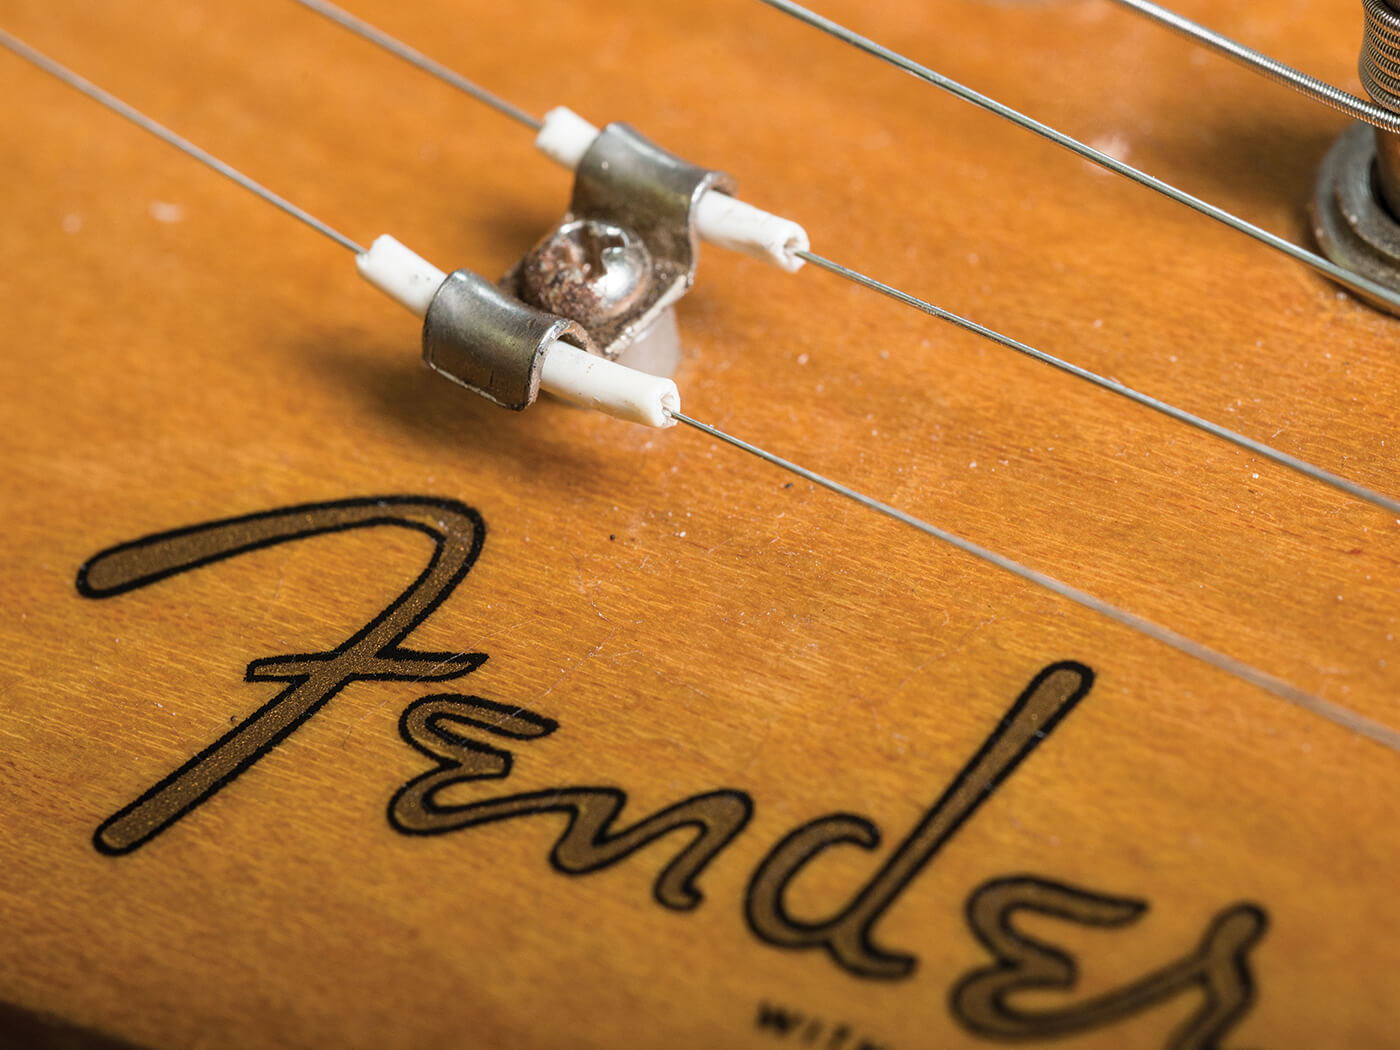 25 ways to upgrade your Fender Stratocaster - Guitar.com ... Vintage Fender Strat Wiring Diagram on vintage les paul wiring diagram, vintage gretsch wiring diagram, vintage tele wiring diagram, vintage guitar wiring diagram,